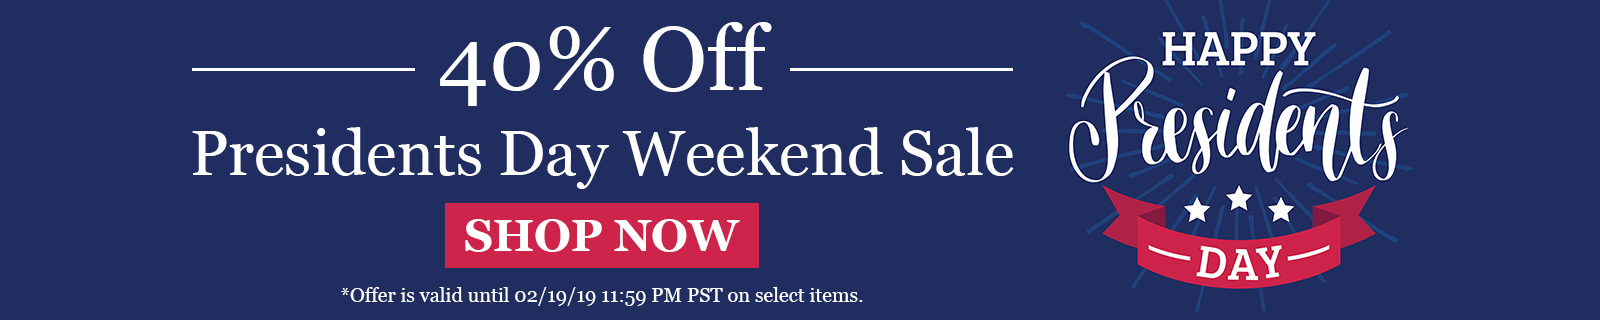 40% Off Presidents Day Weekend Sale SHOP NOW